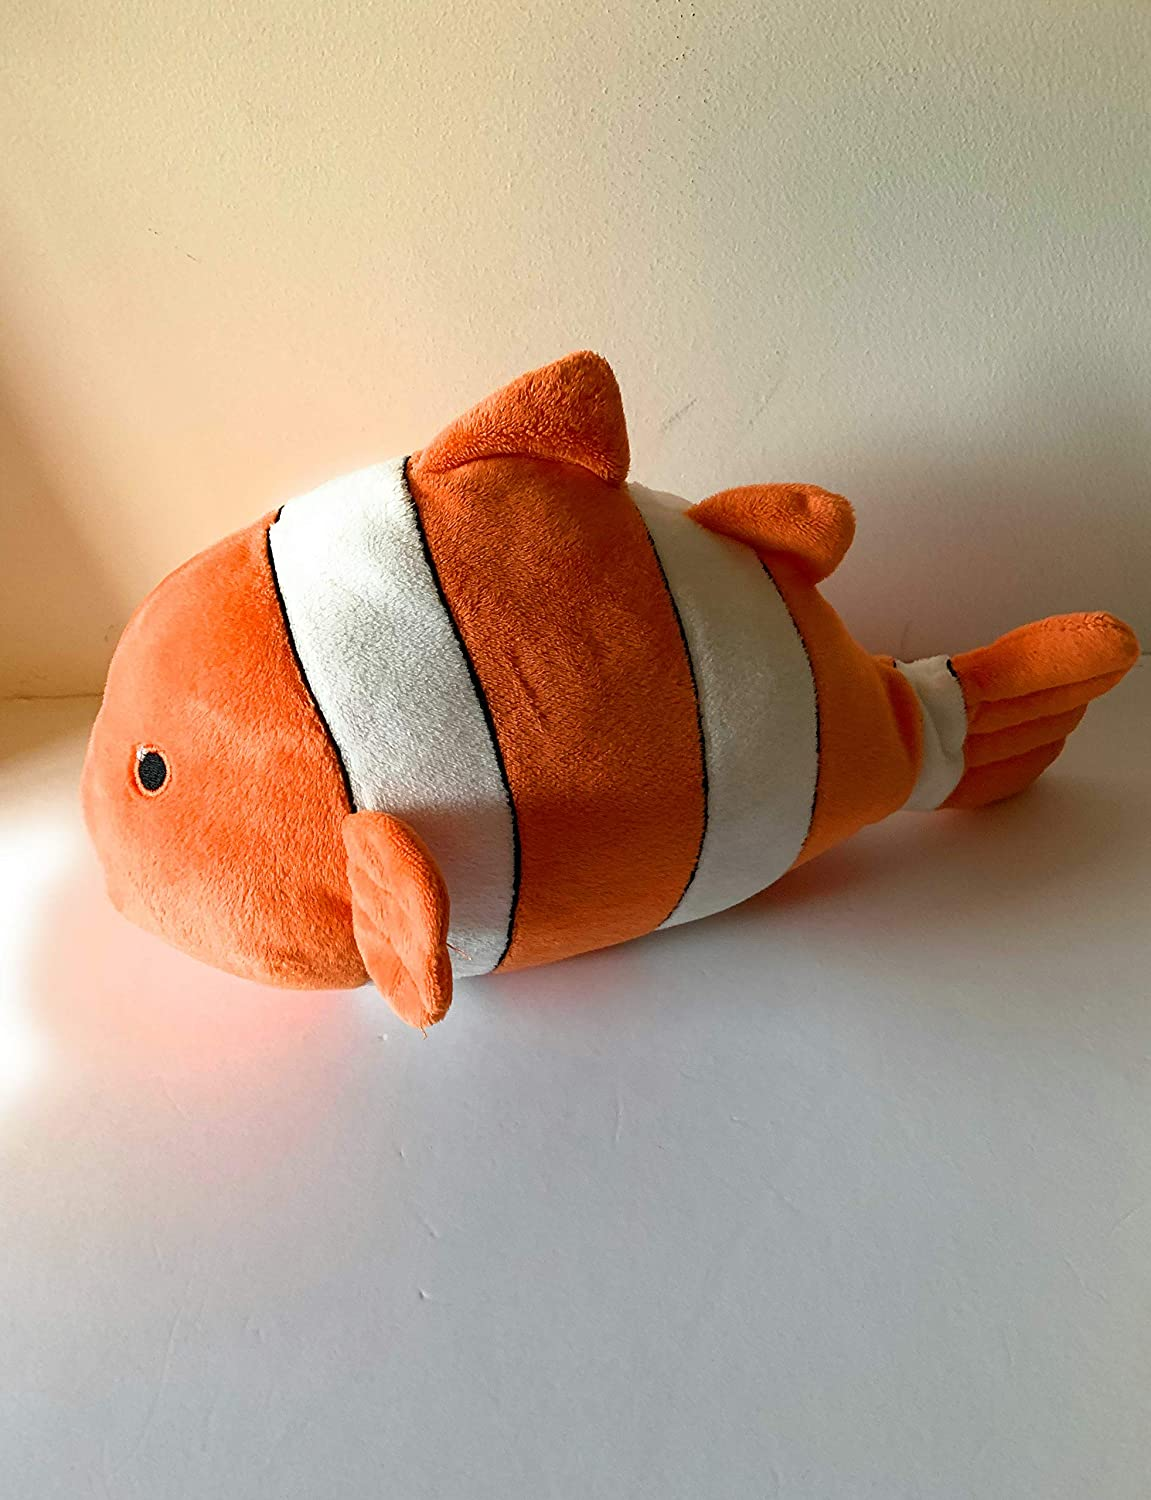 Weighted stuffed animal sensory toy weighted buddy 3 lbs clown fish